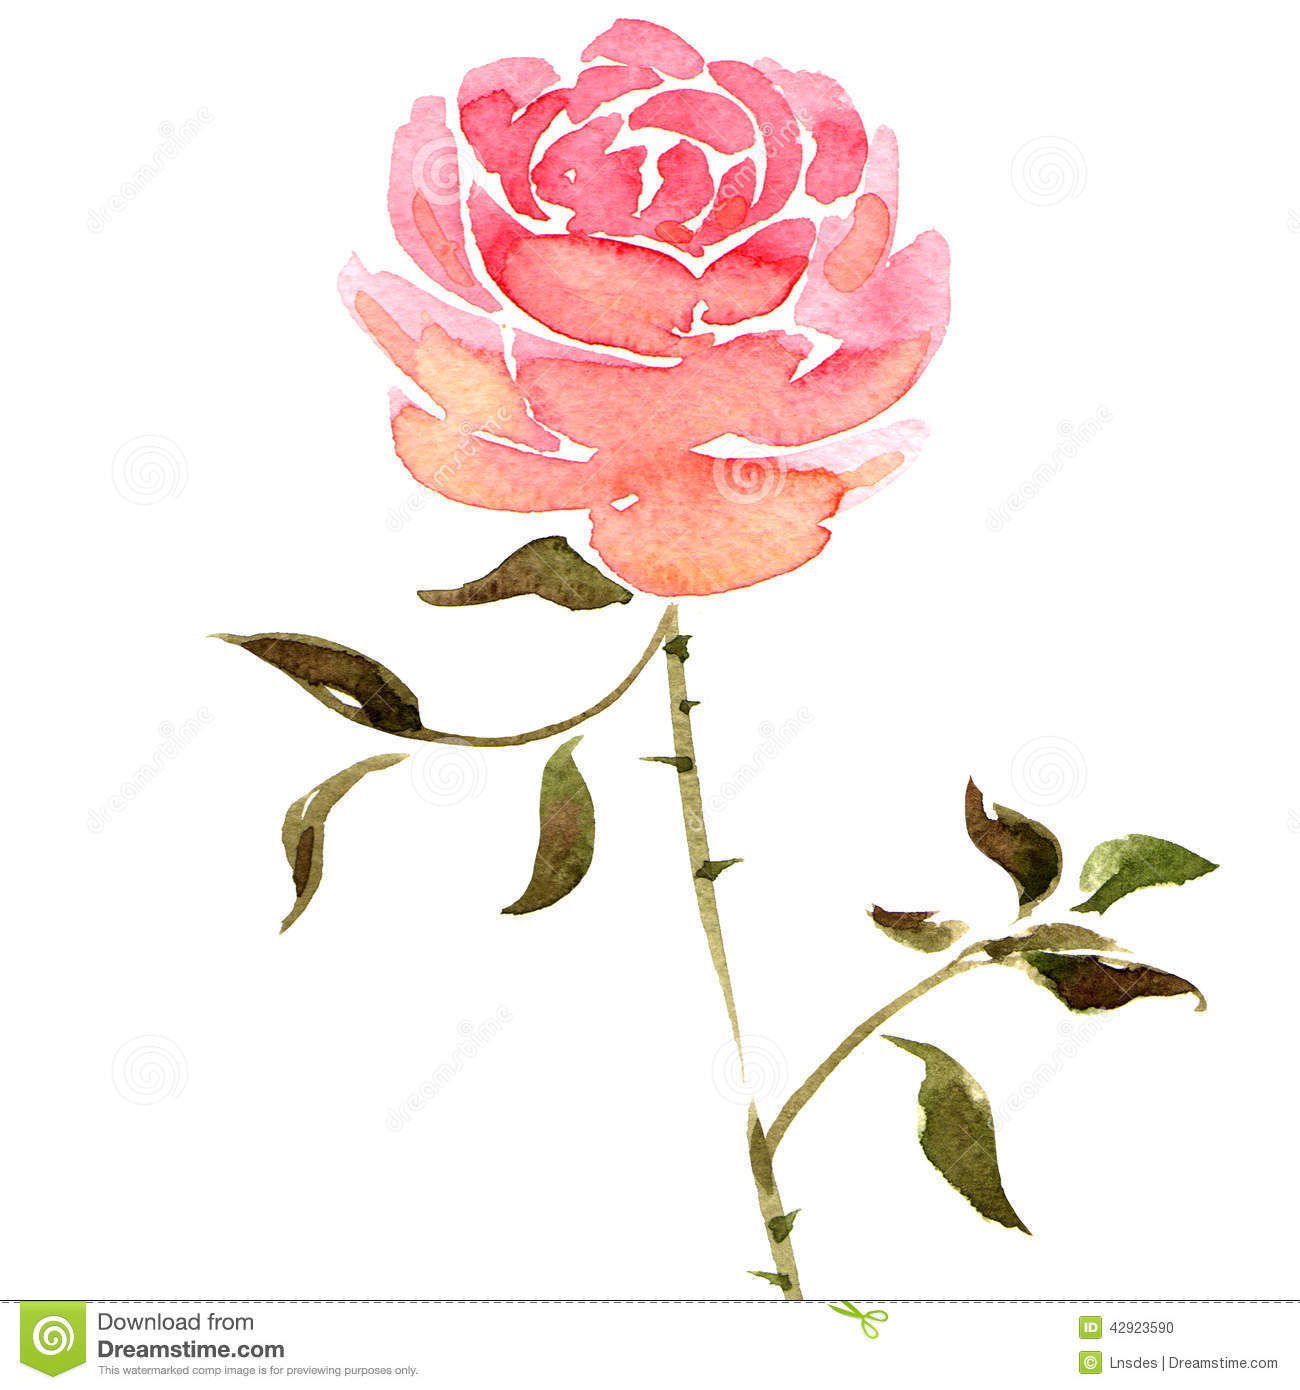 Watercolor rose flower stock illustration. Illustration of ...